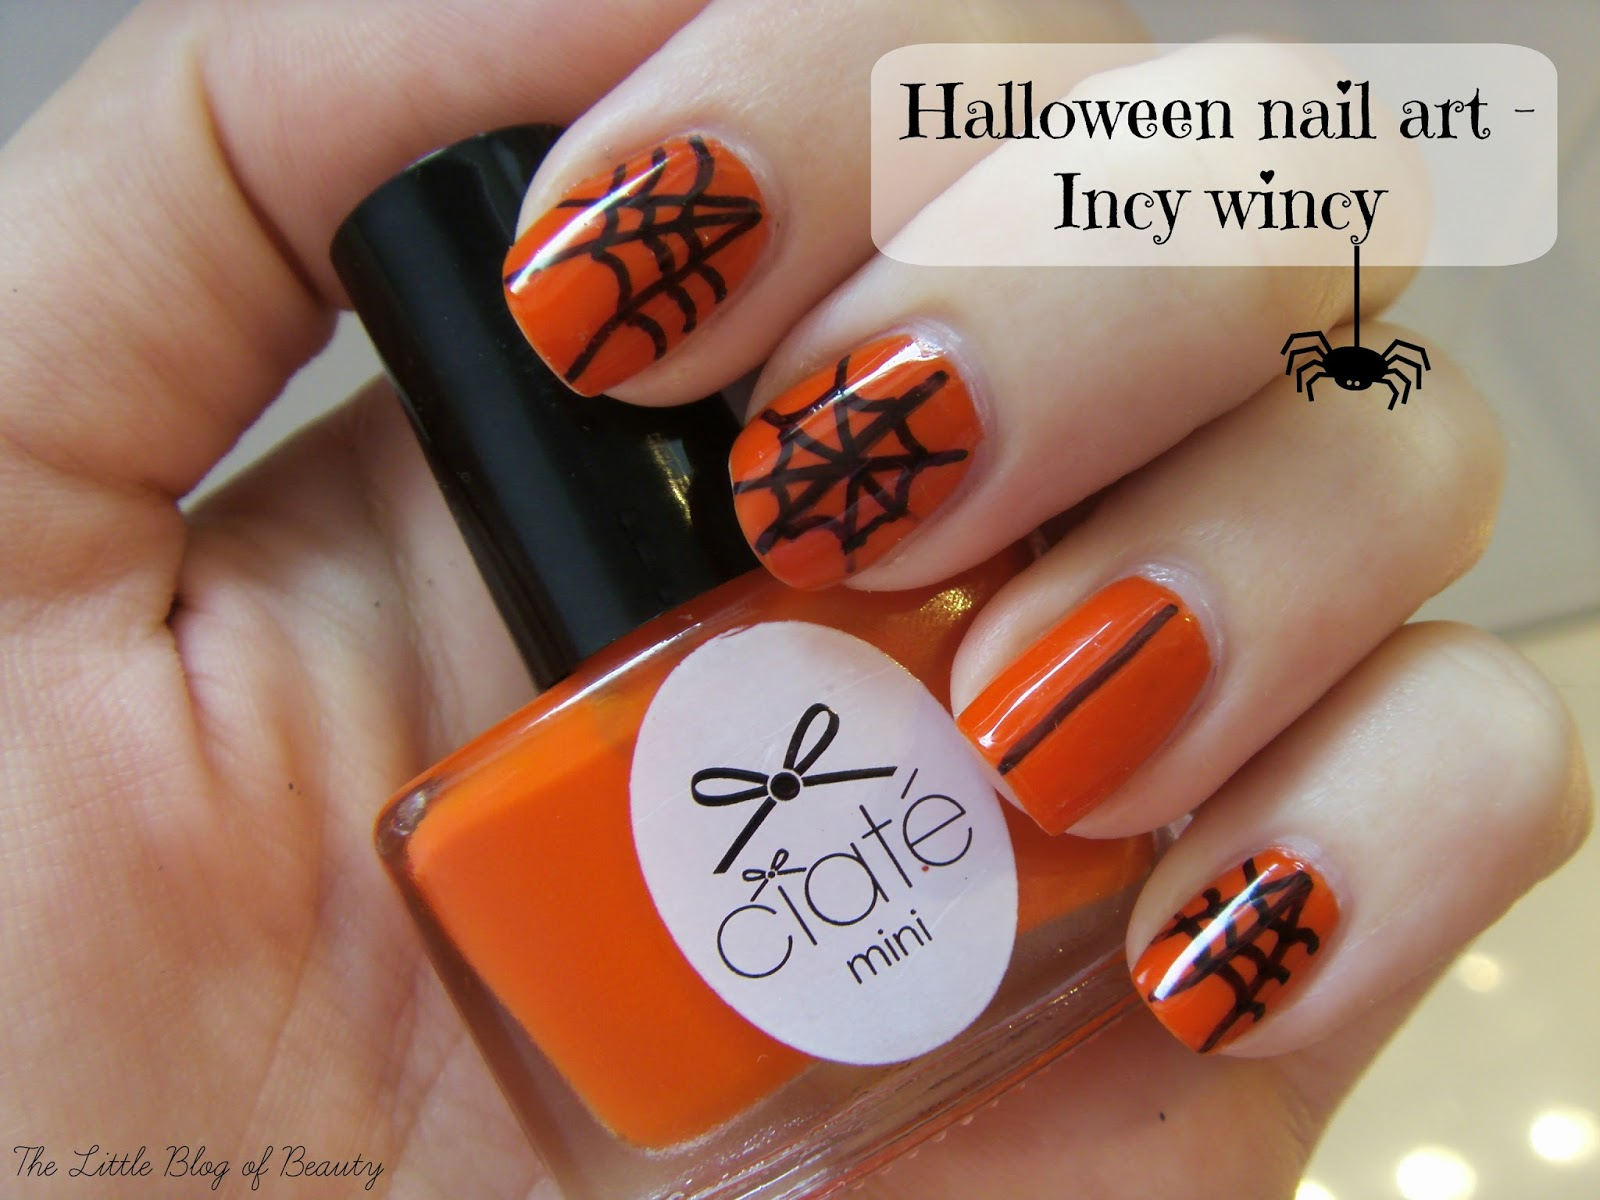 Halloween nail art - Incy wincy